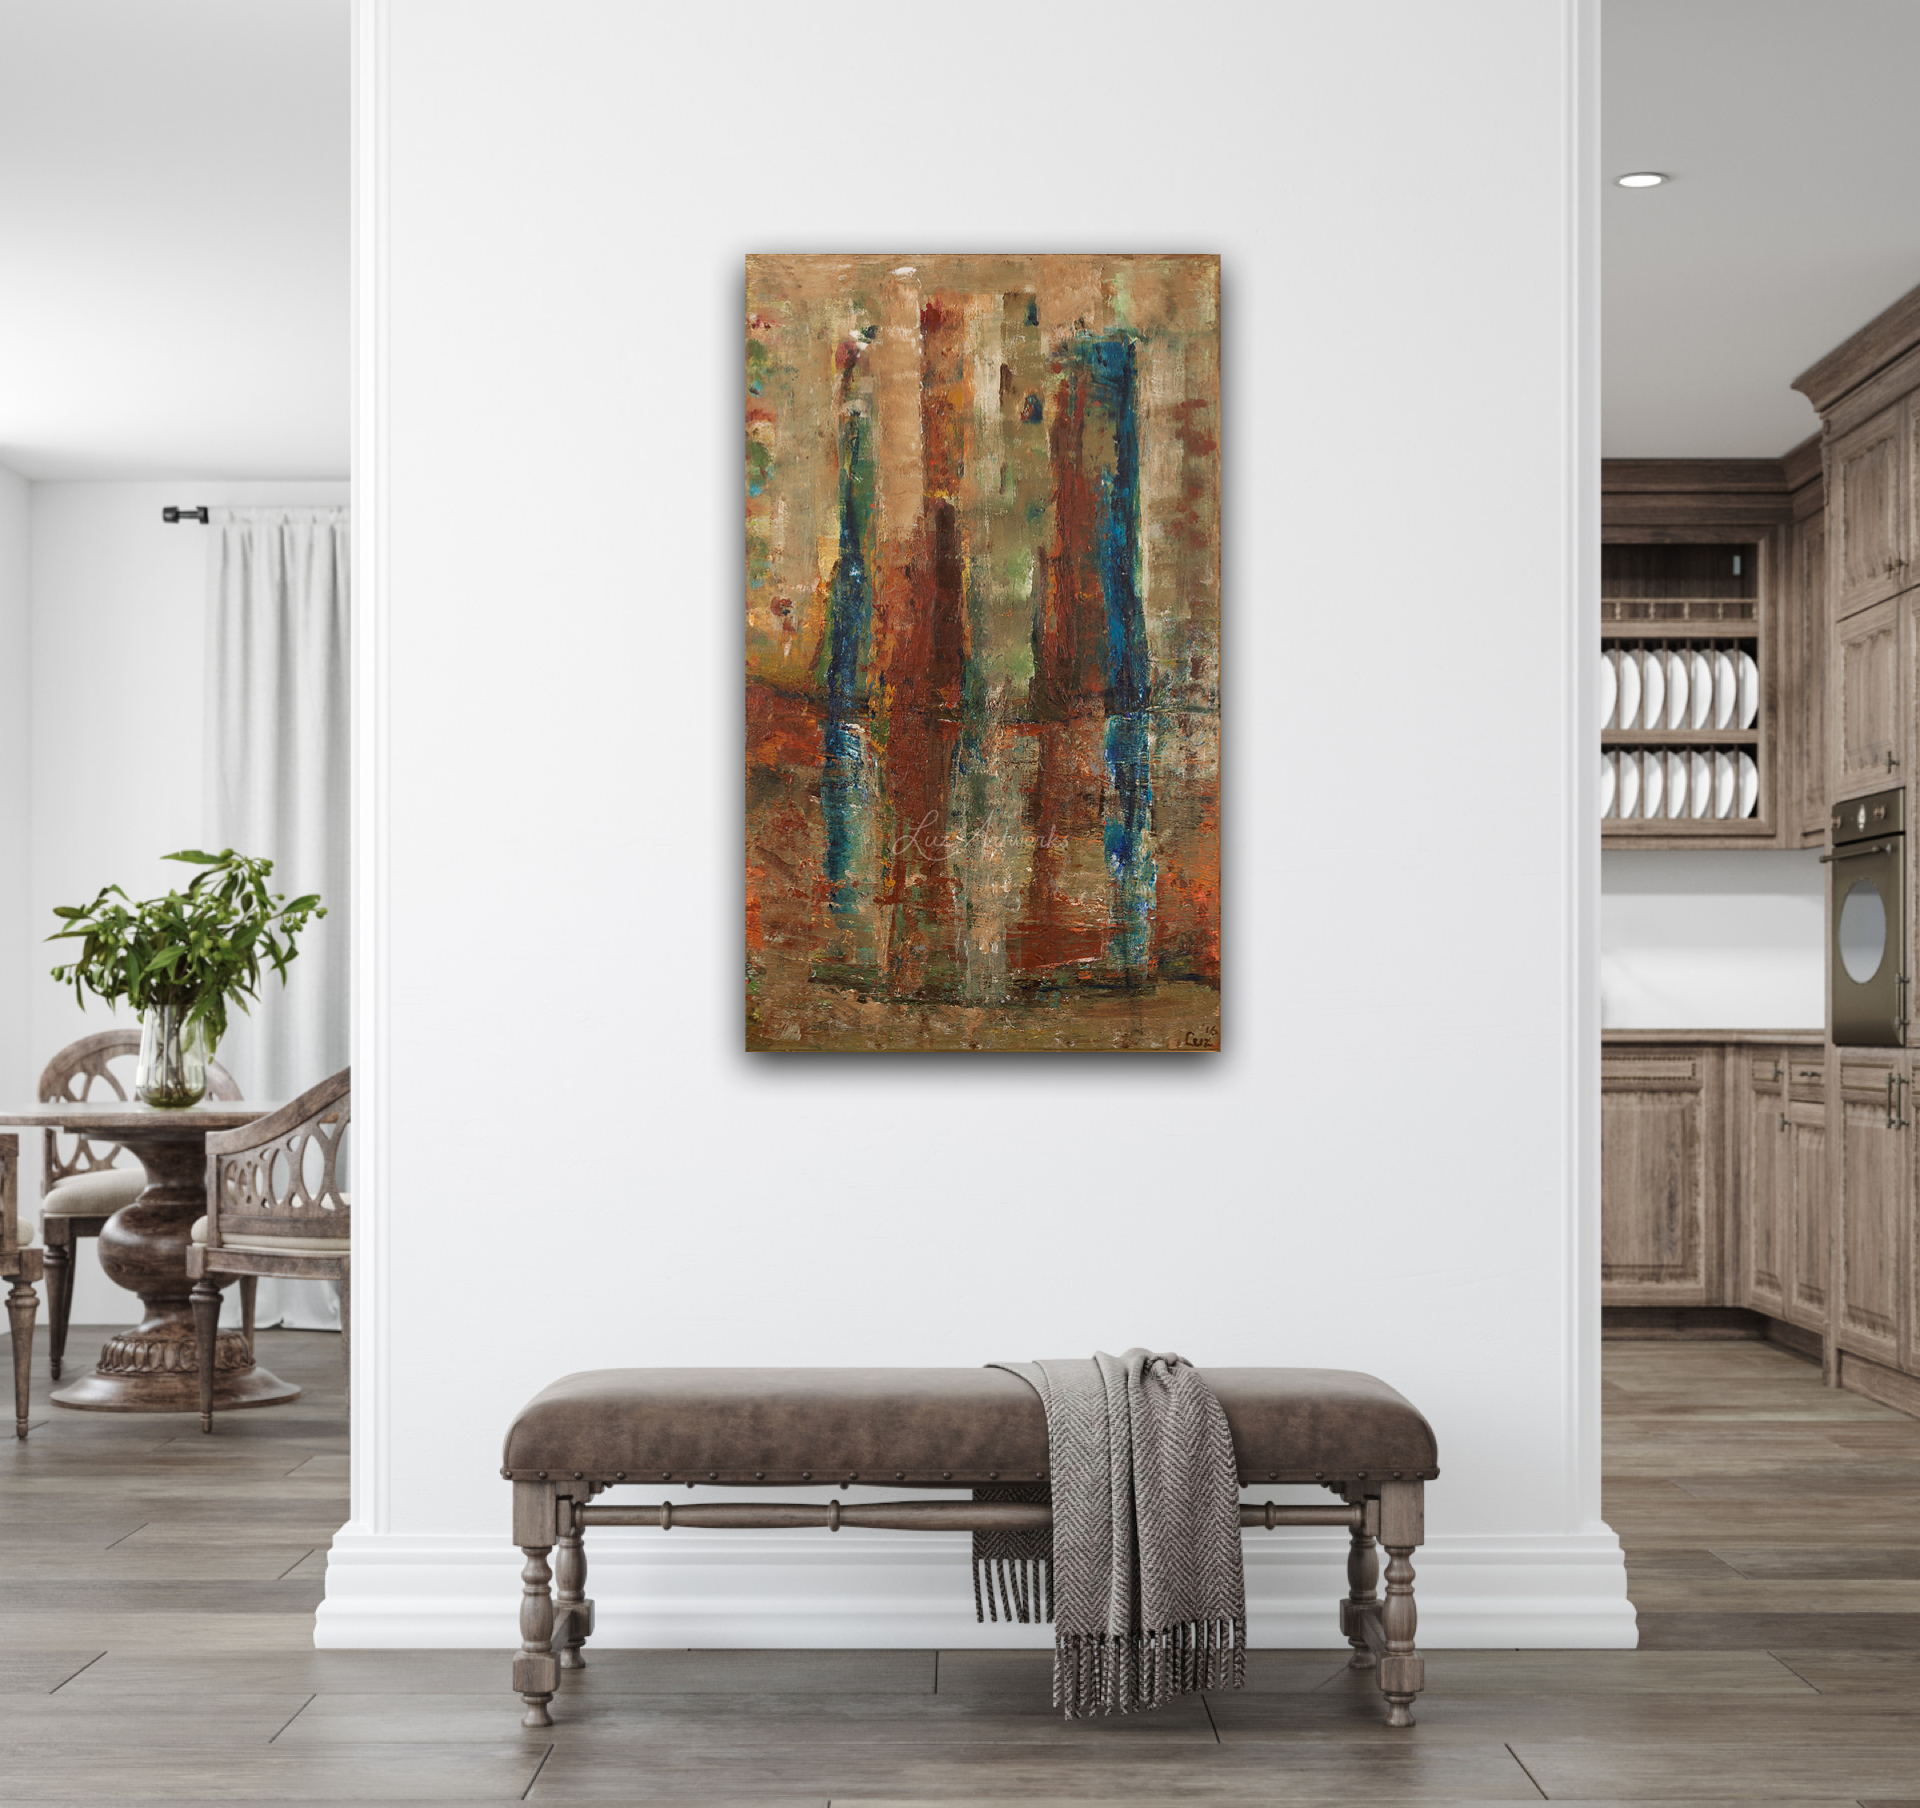 Painting Towers on the Wall by Luz Artworks / Marloes Bloedjes